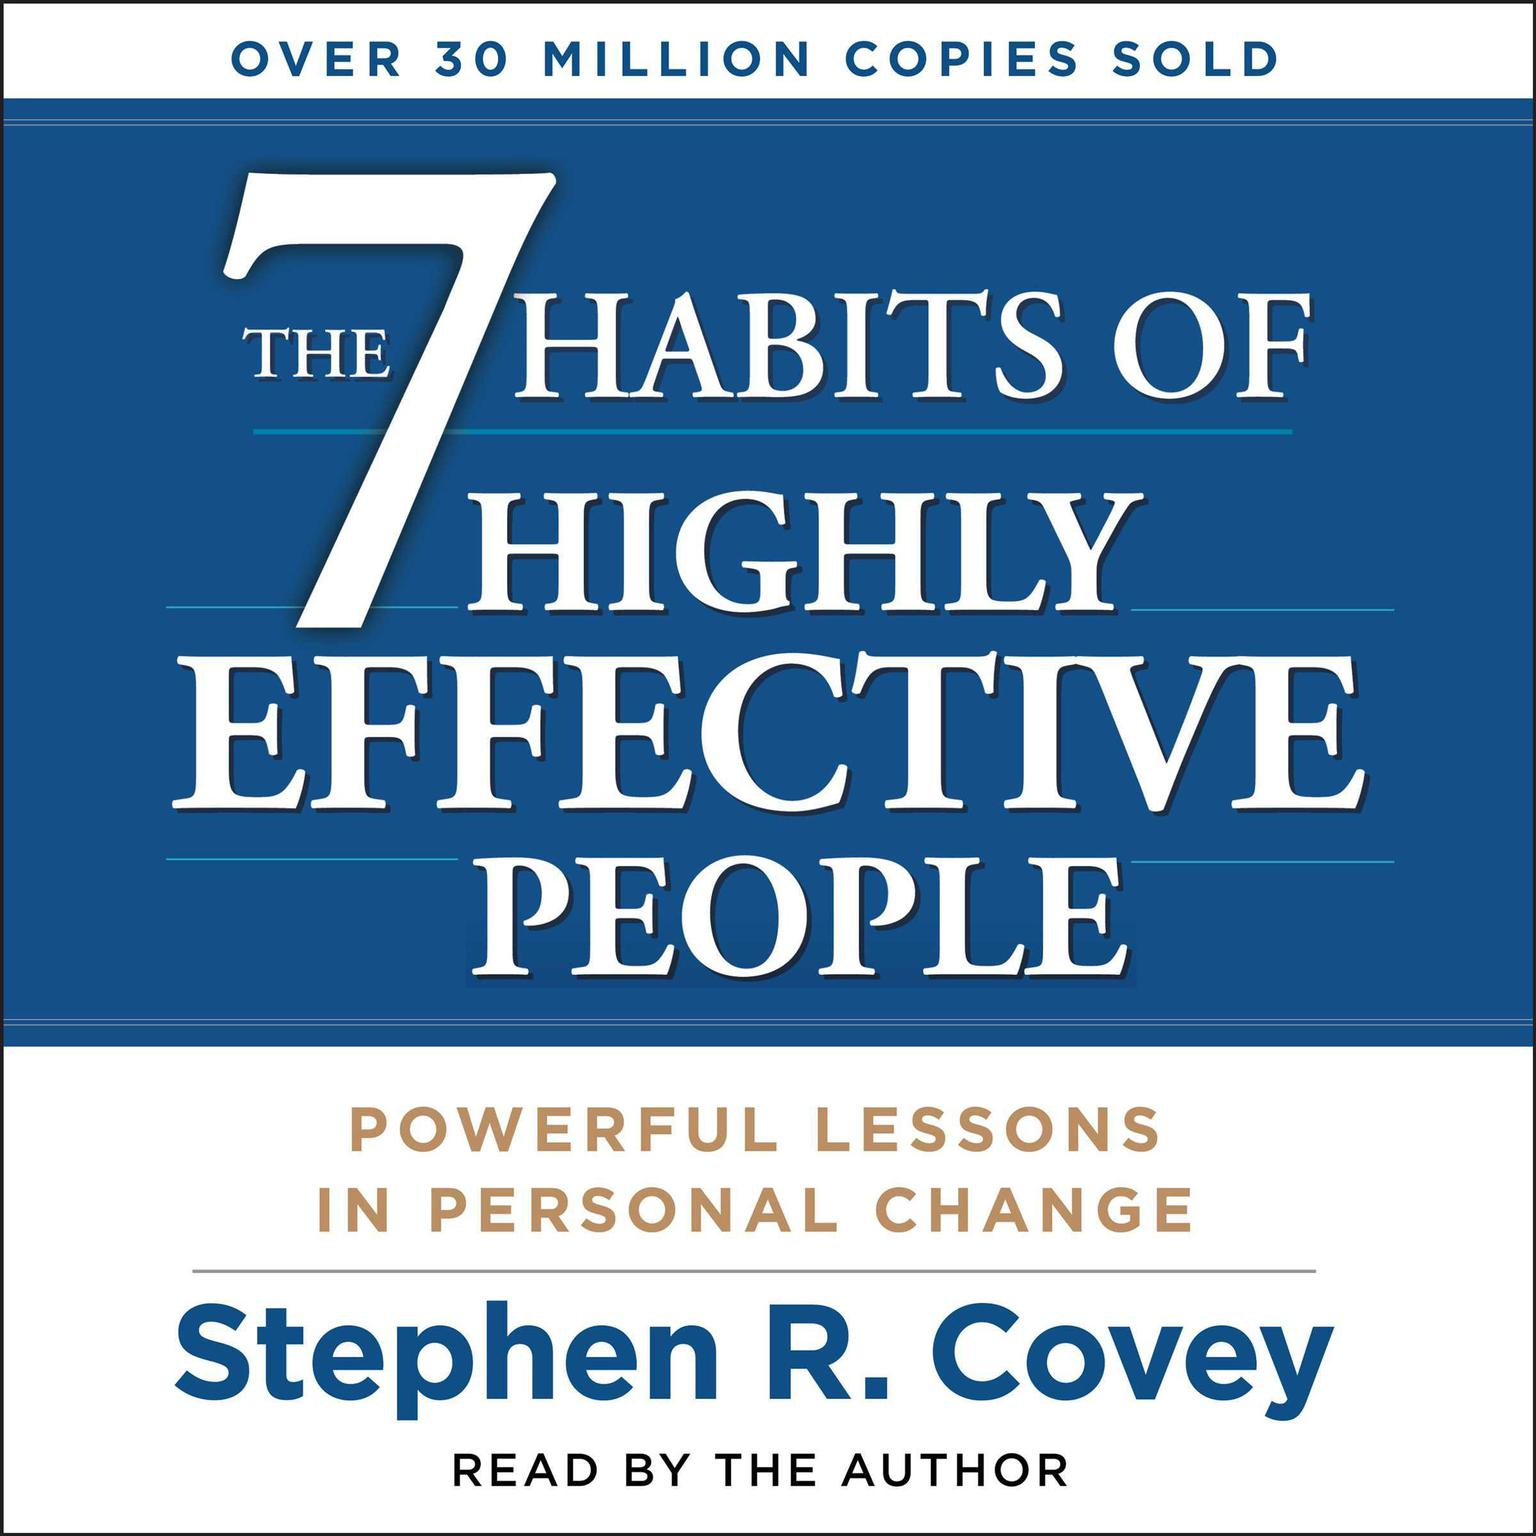 The 7 Habits of Highly Effective People - Best self-development Books